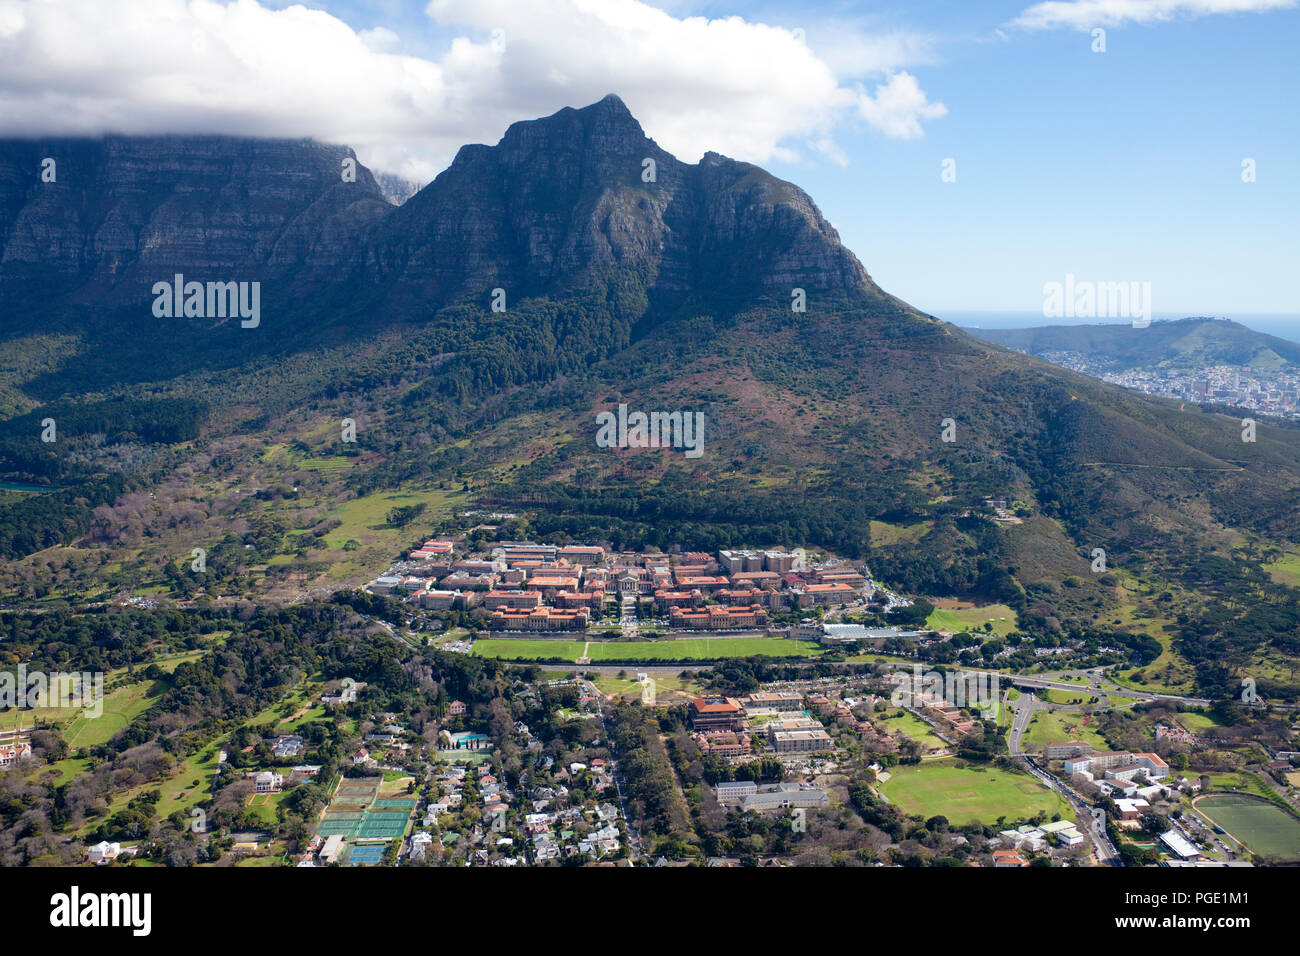 Cape Town University Aerial view. South Africa. Stock Photo